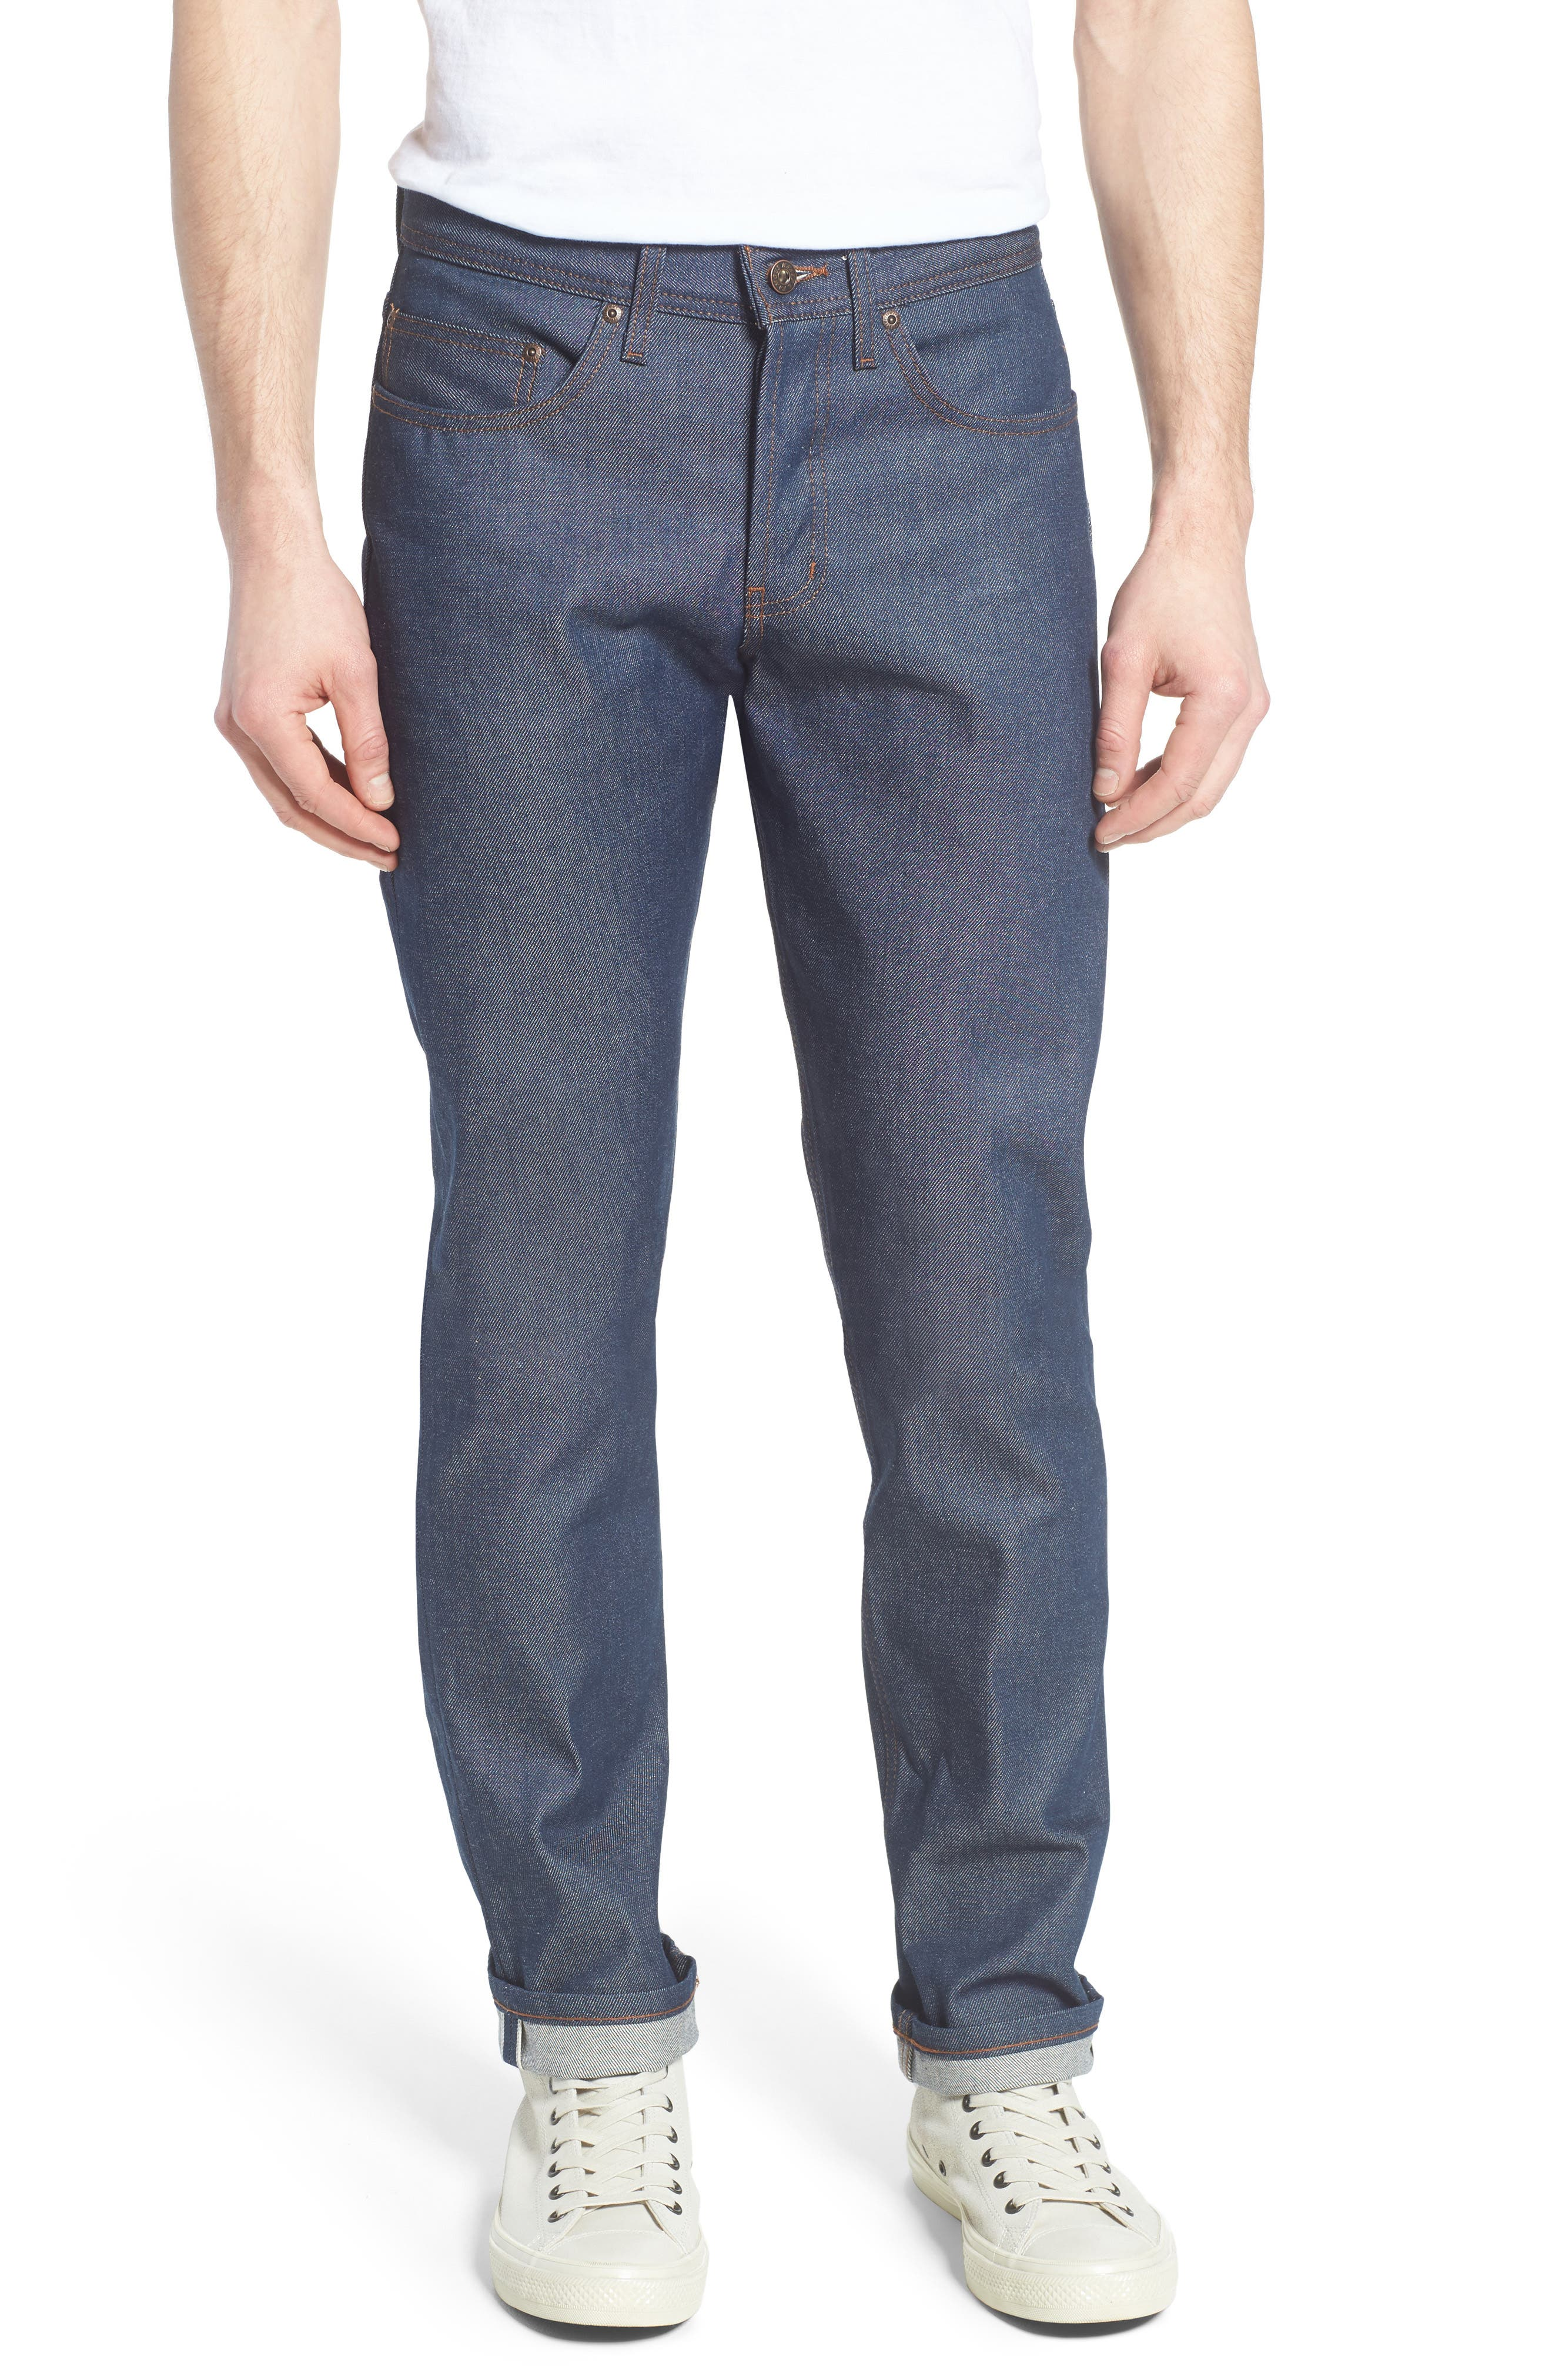 Naked & Famous Denim Weird Guy Slim Fit Raw Selvedge Jeans